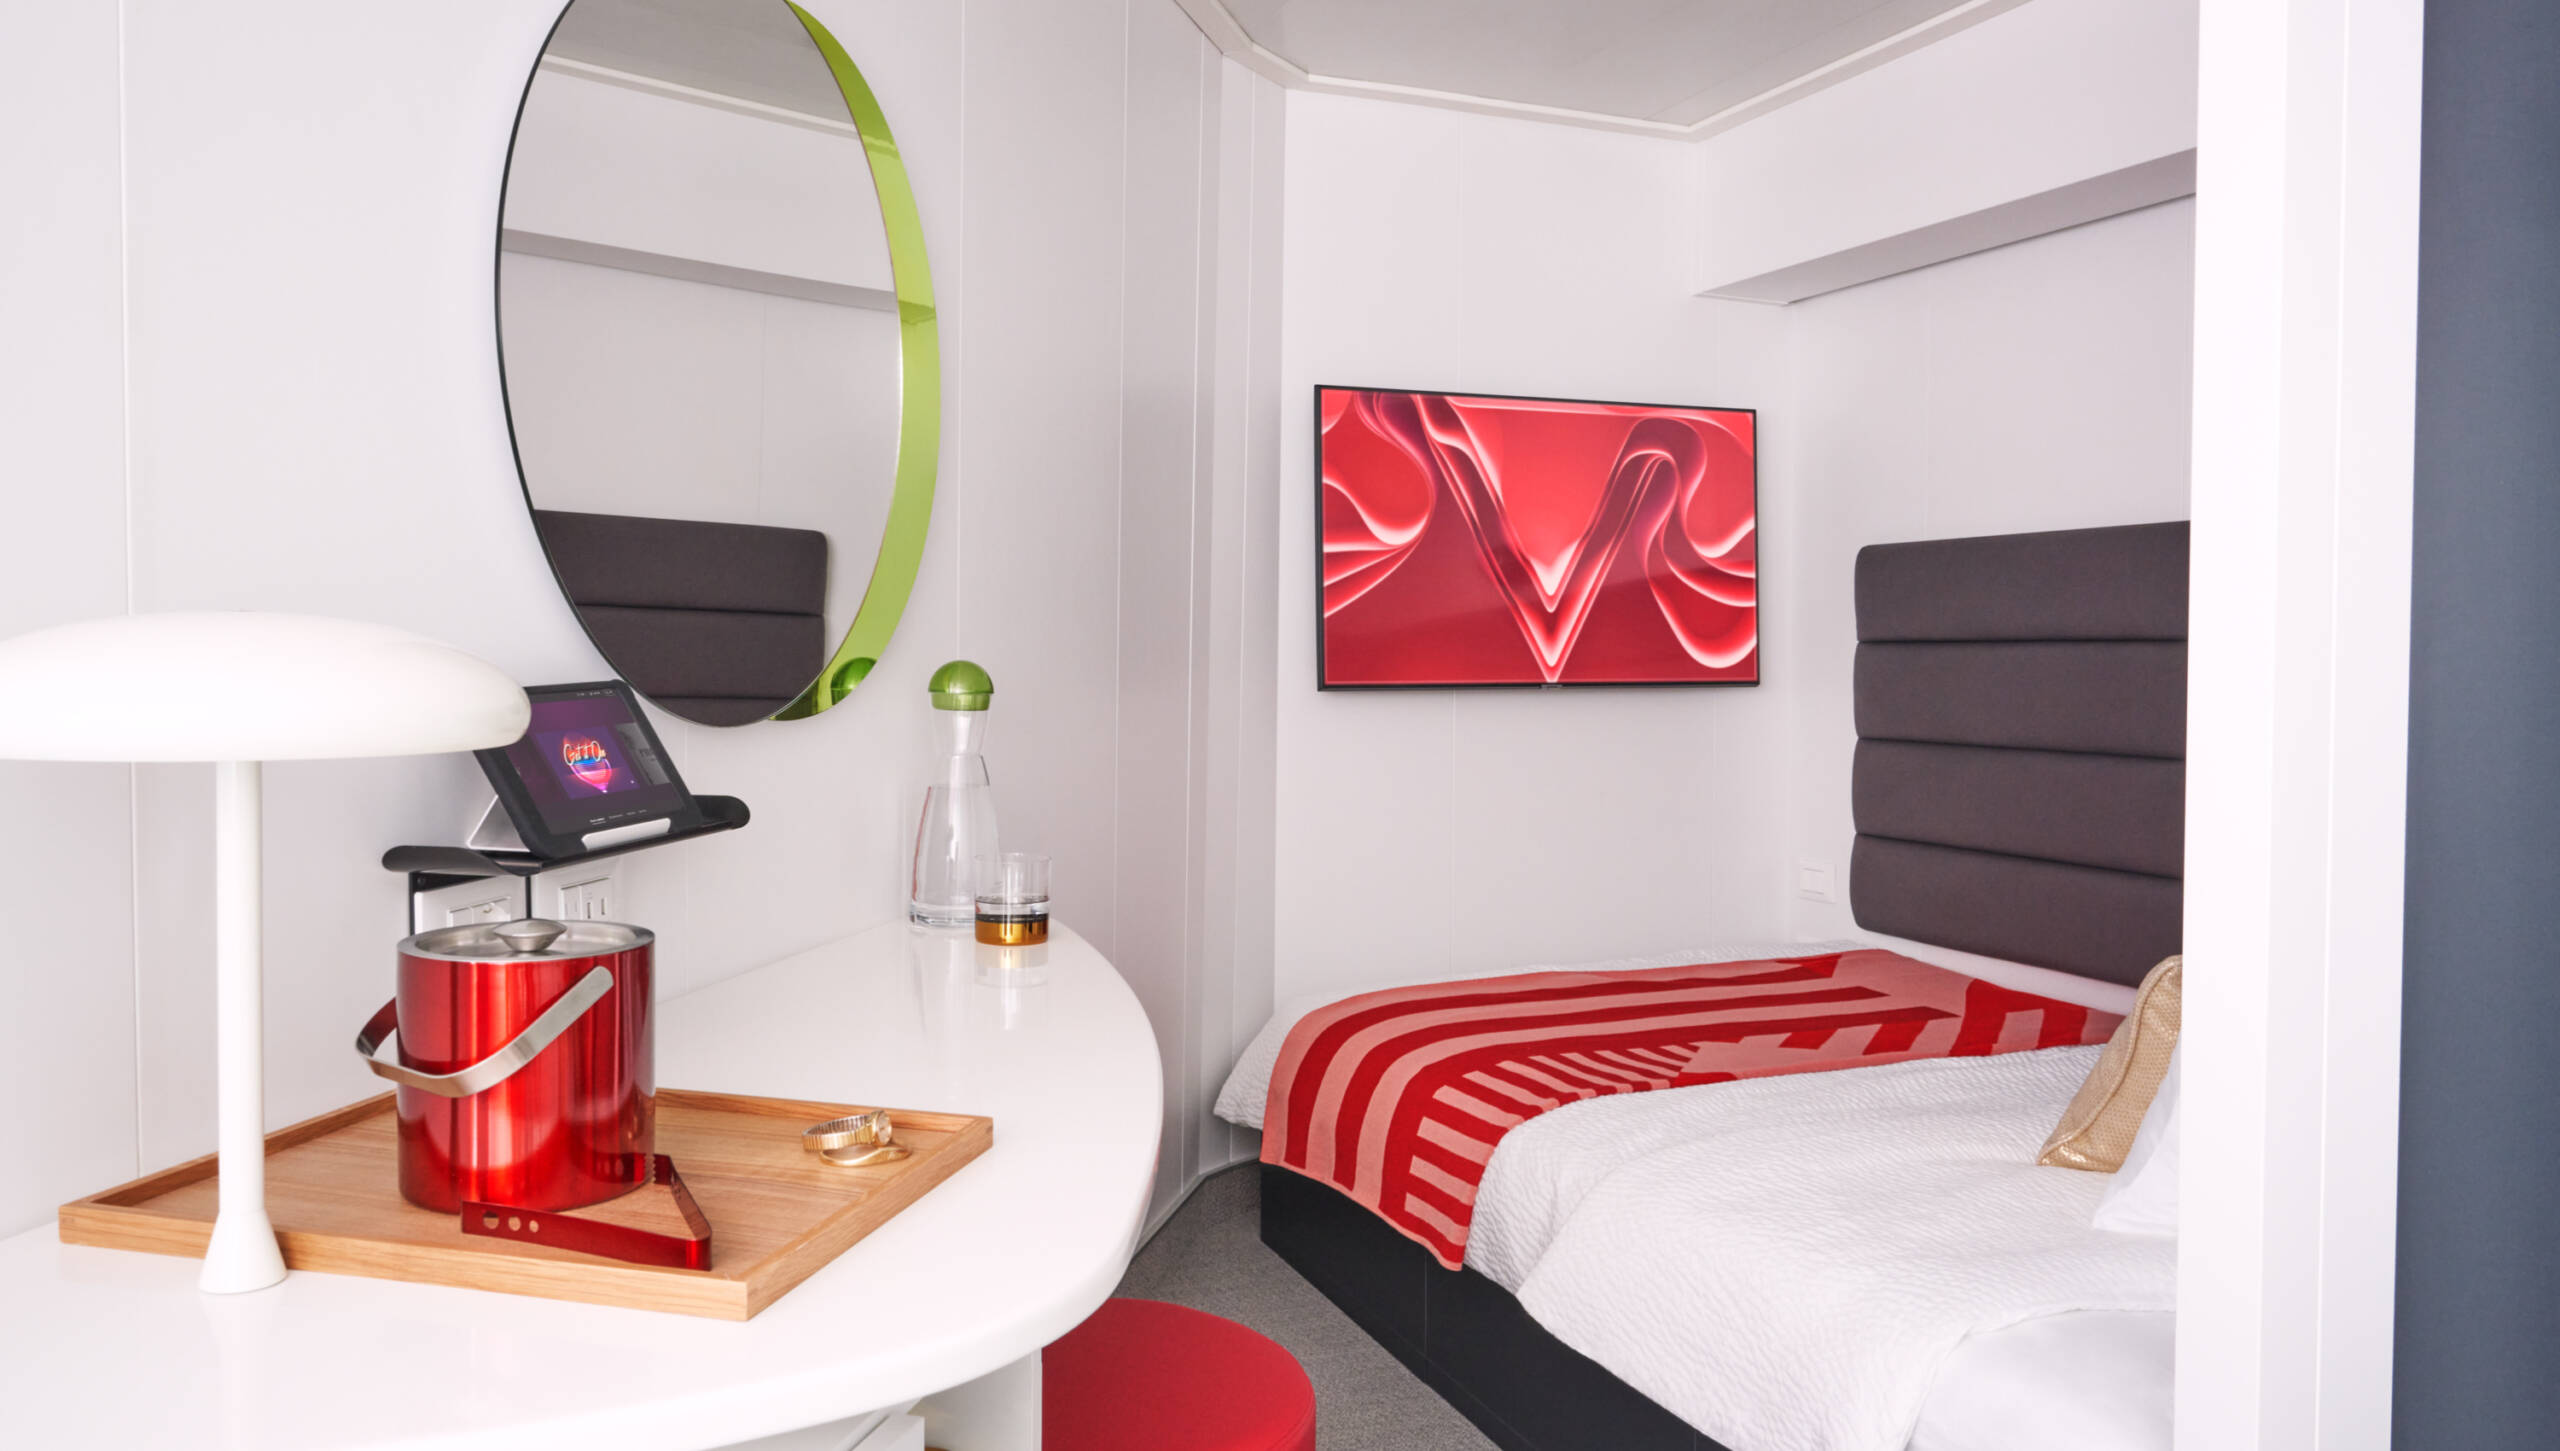 These 8 cabins are great for travelers cruising alone - The Points Guy